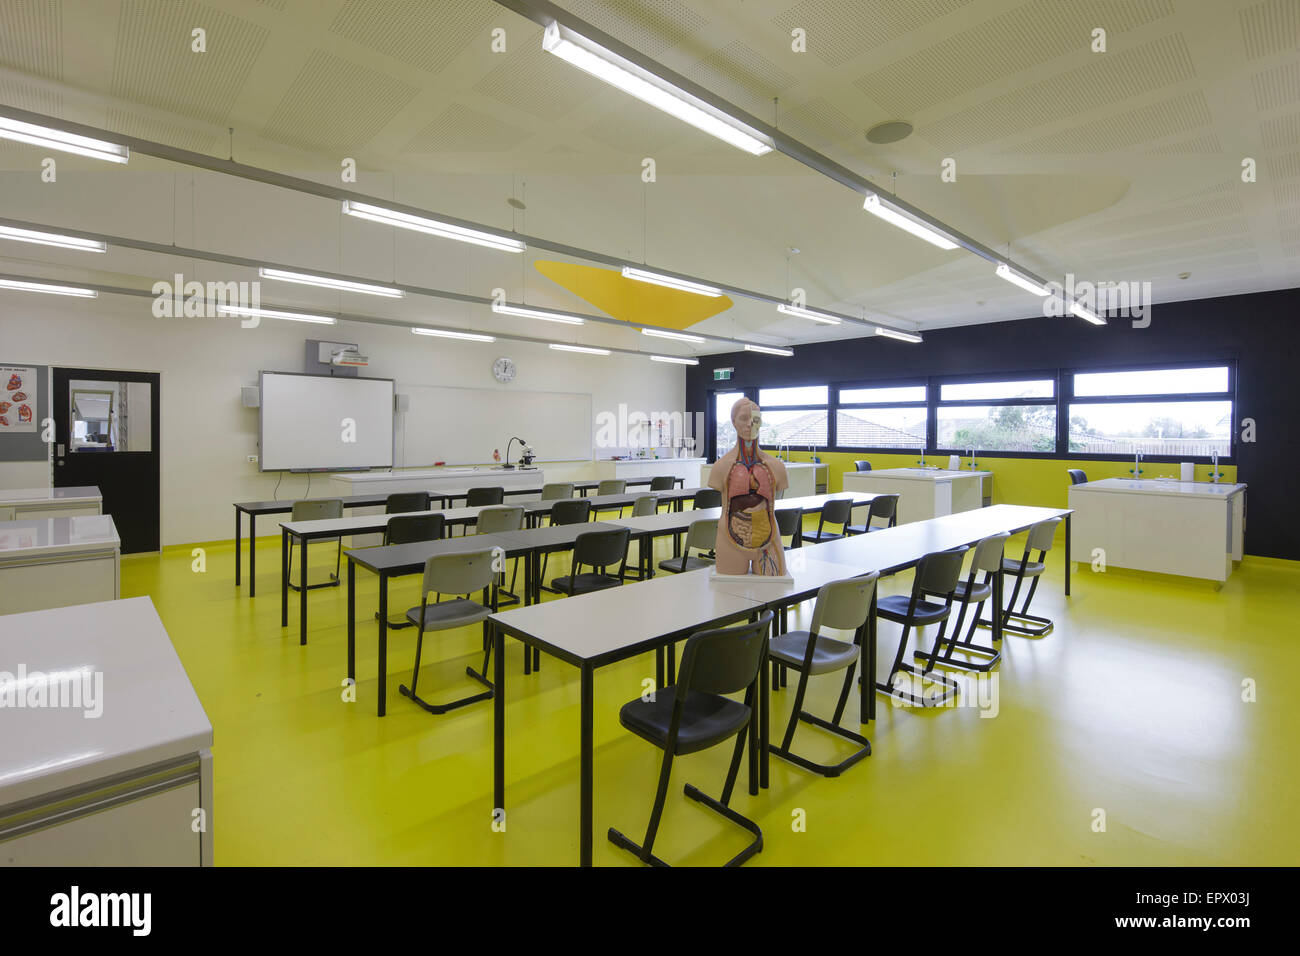 Classroom interior of Penleigh and Essendon Grammar School, Essendon, Melbourne, Australia. - Stock Image